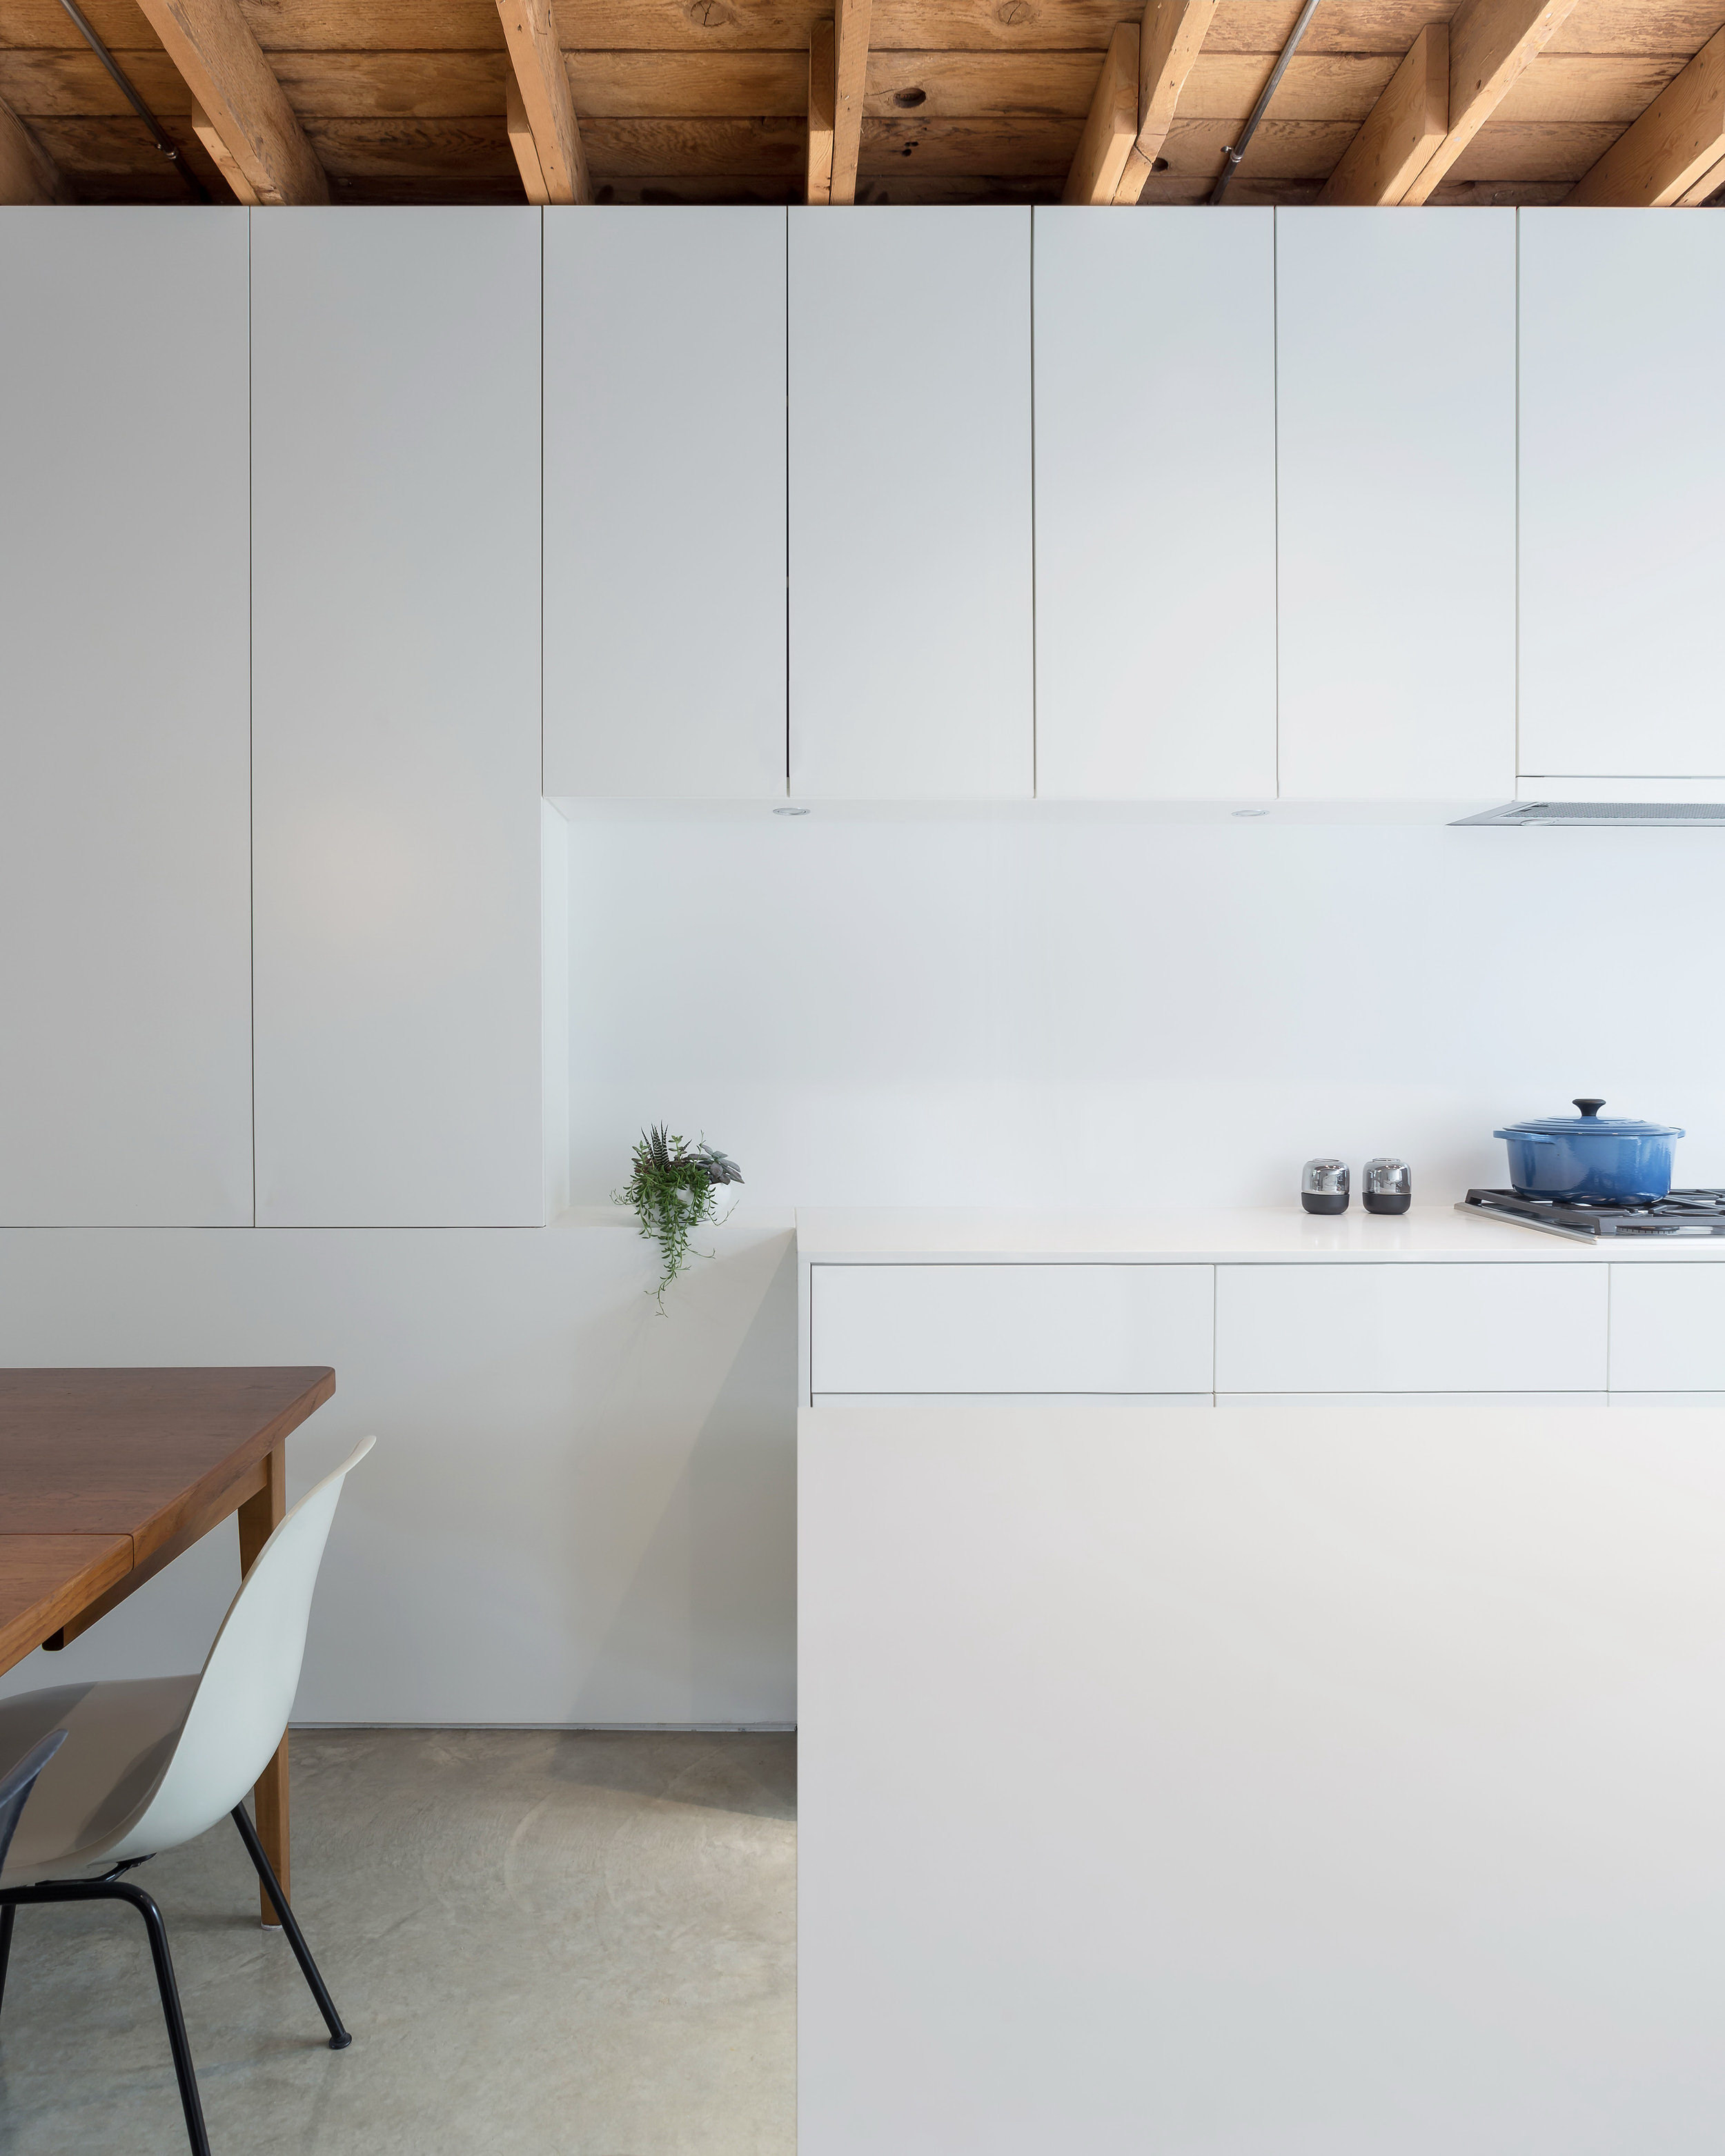 480 House by D'Arcy Jones Architects